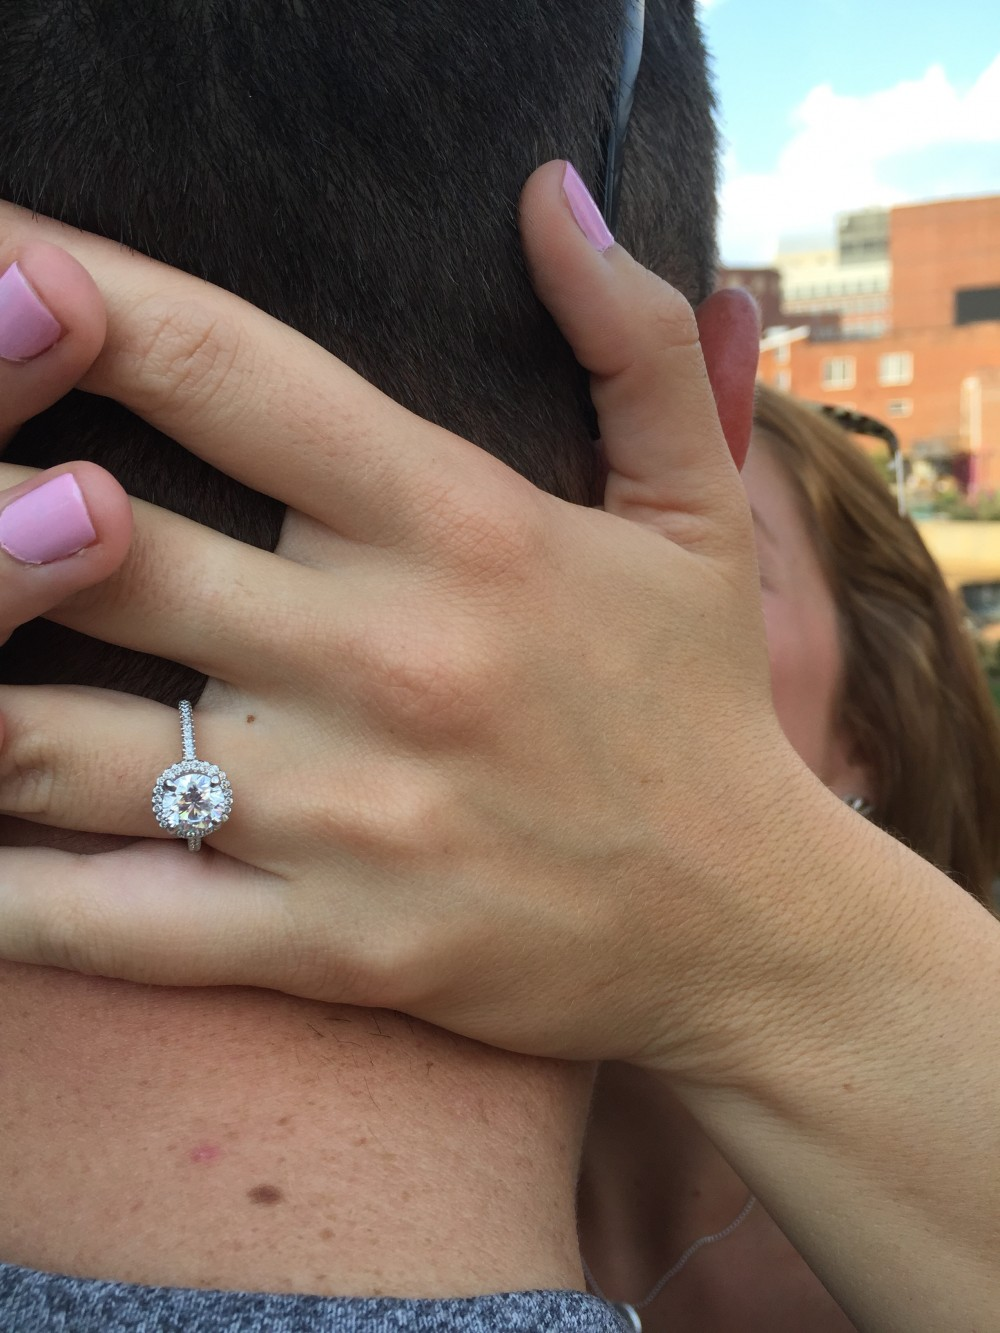 Image 2 of Katie and Kyle's Proposal Story